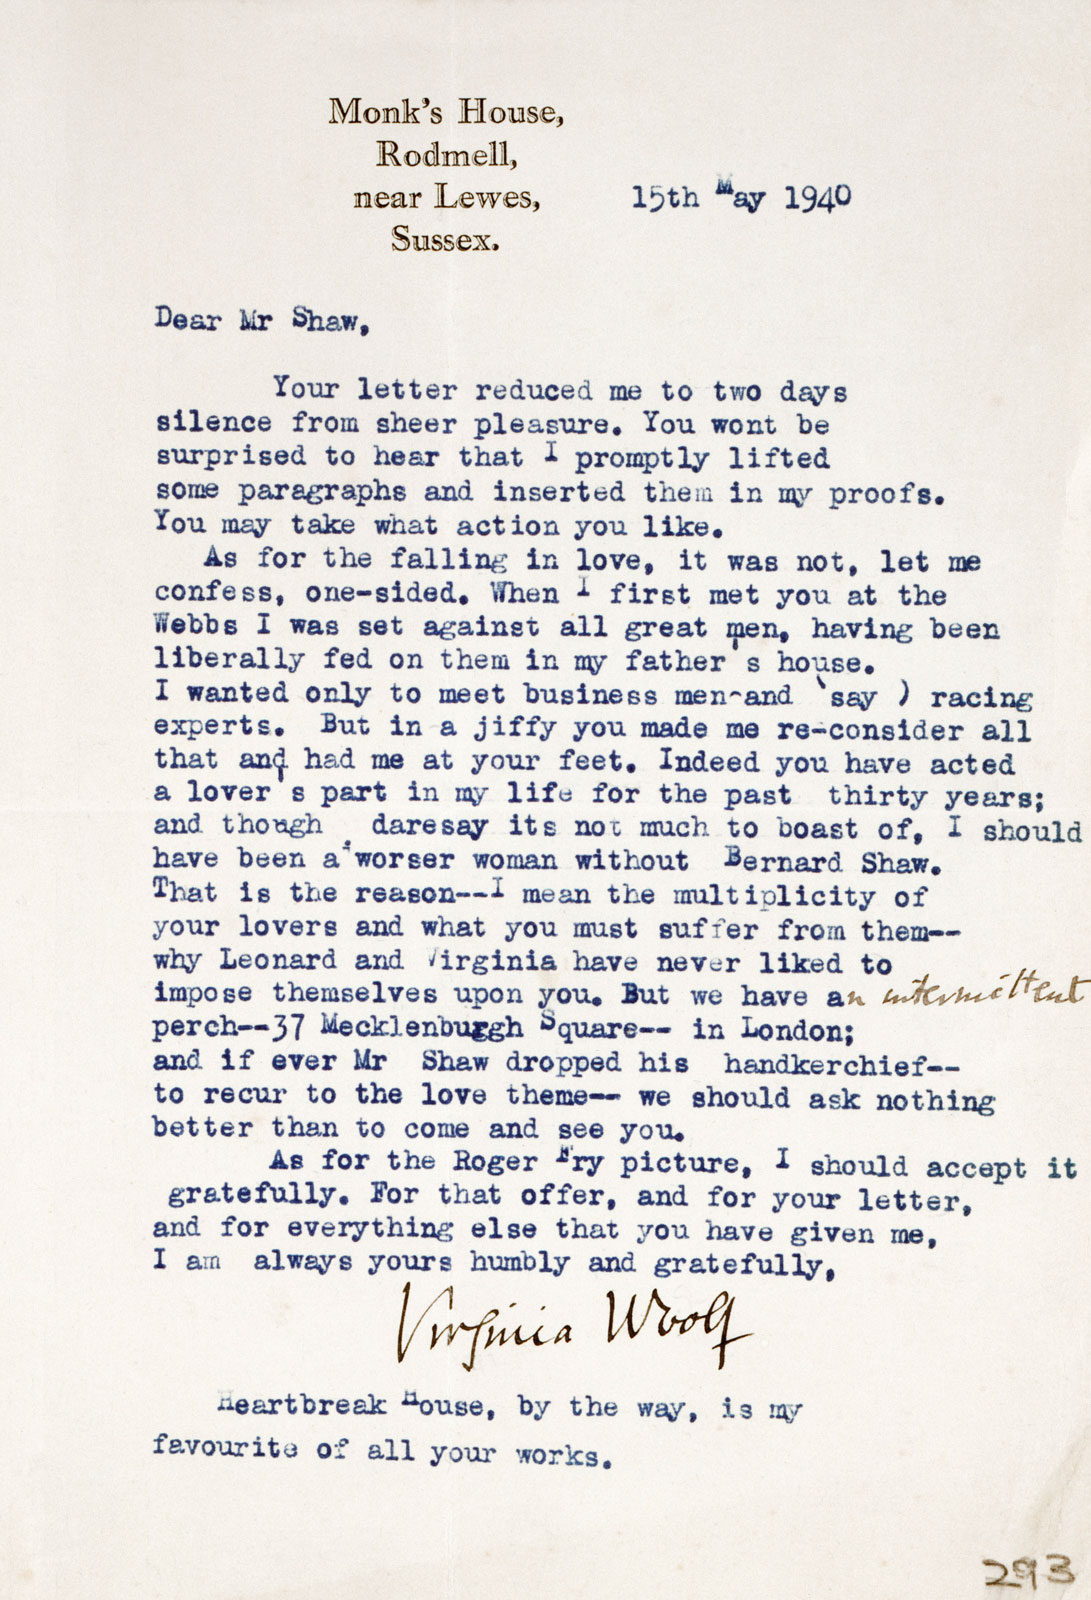 Virginia Woolf's letter to Shaw